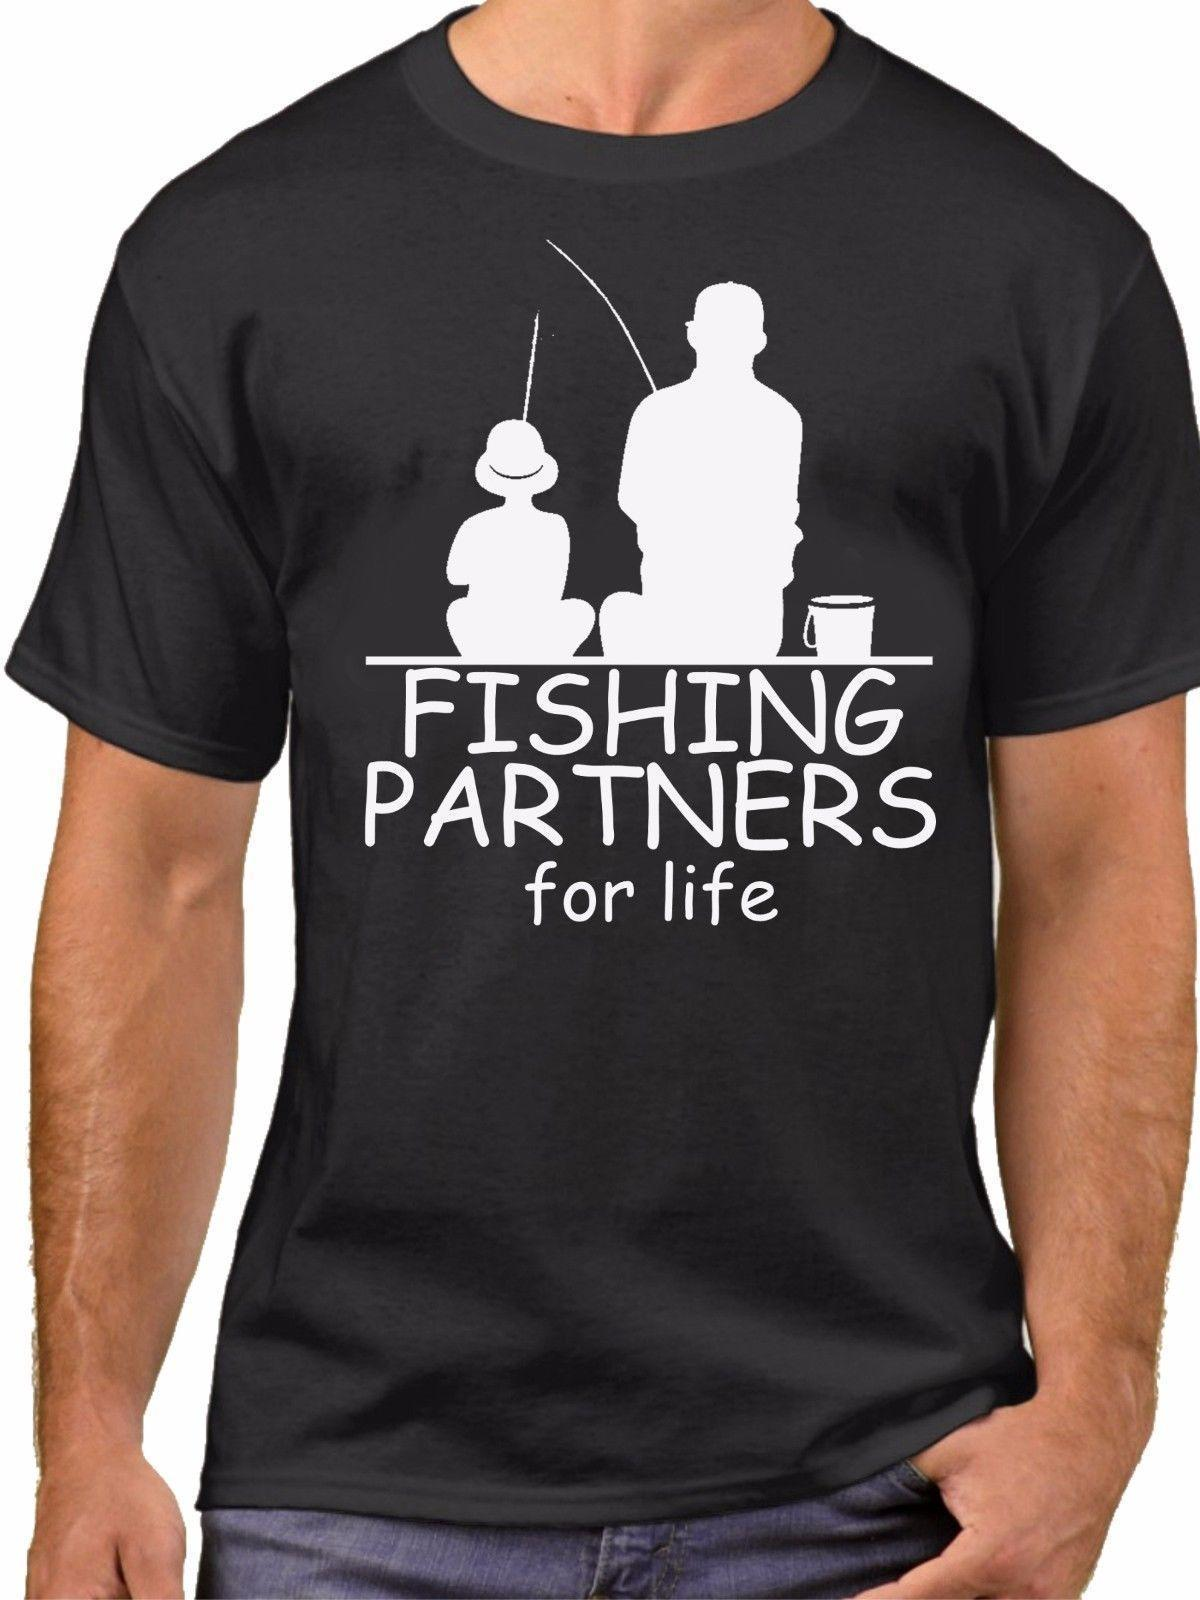 6adbd2d5 Fishing Partners Shirts Father And Son Daughter Matching SET Tee Fathers  Day Shop Online T Shirts T Shirt From Yubin4, $14.67| DHgate.Com